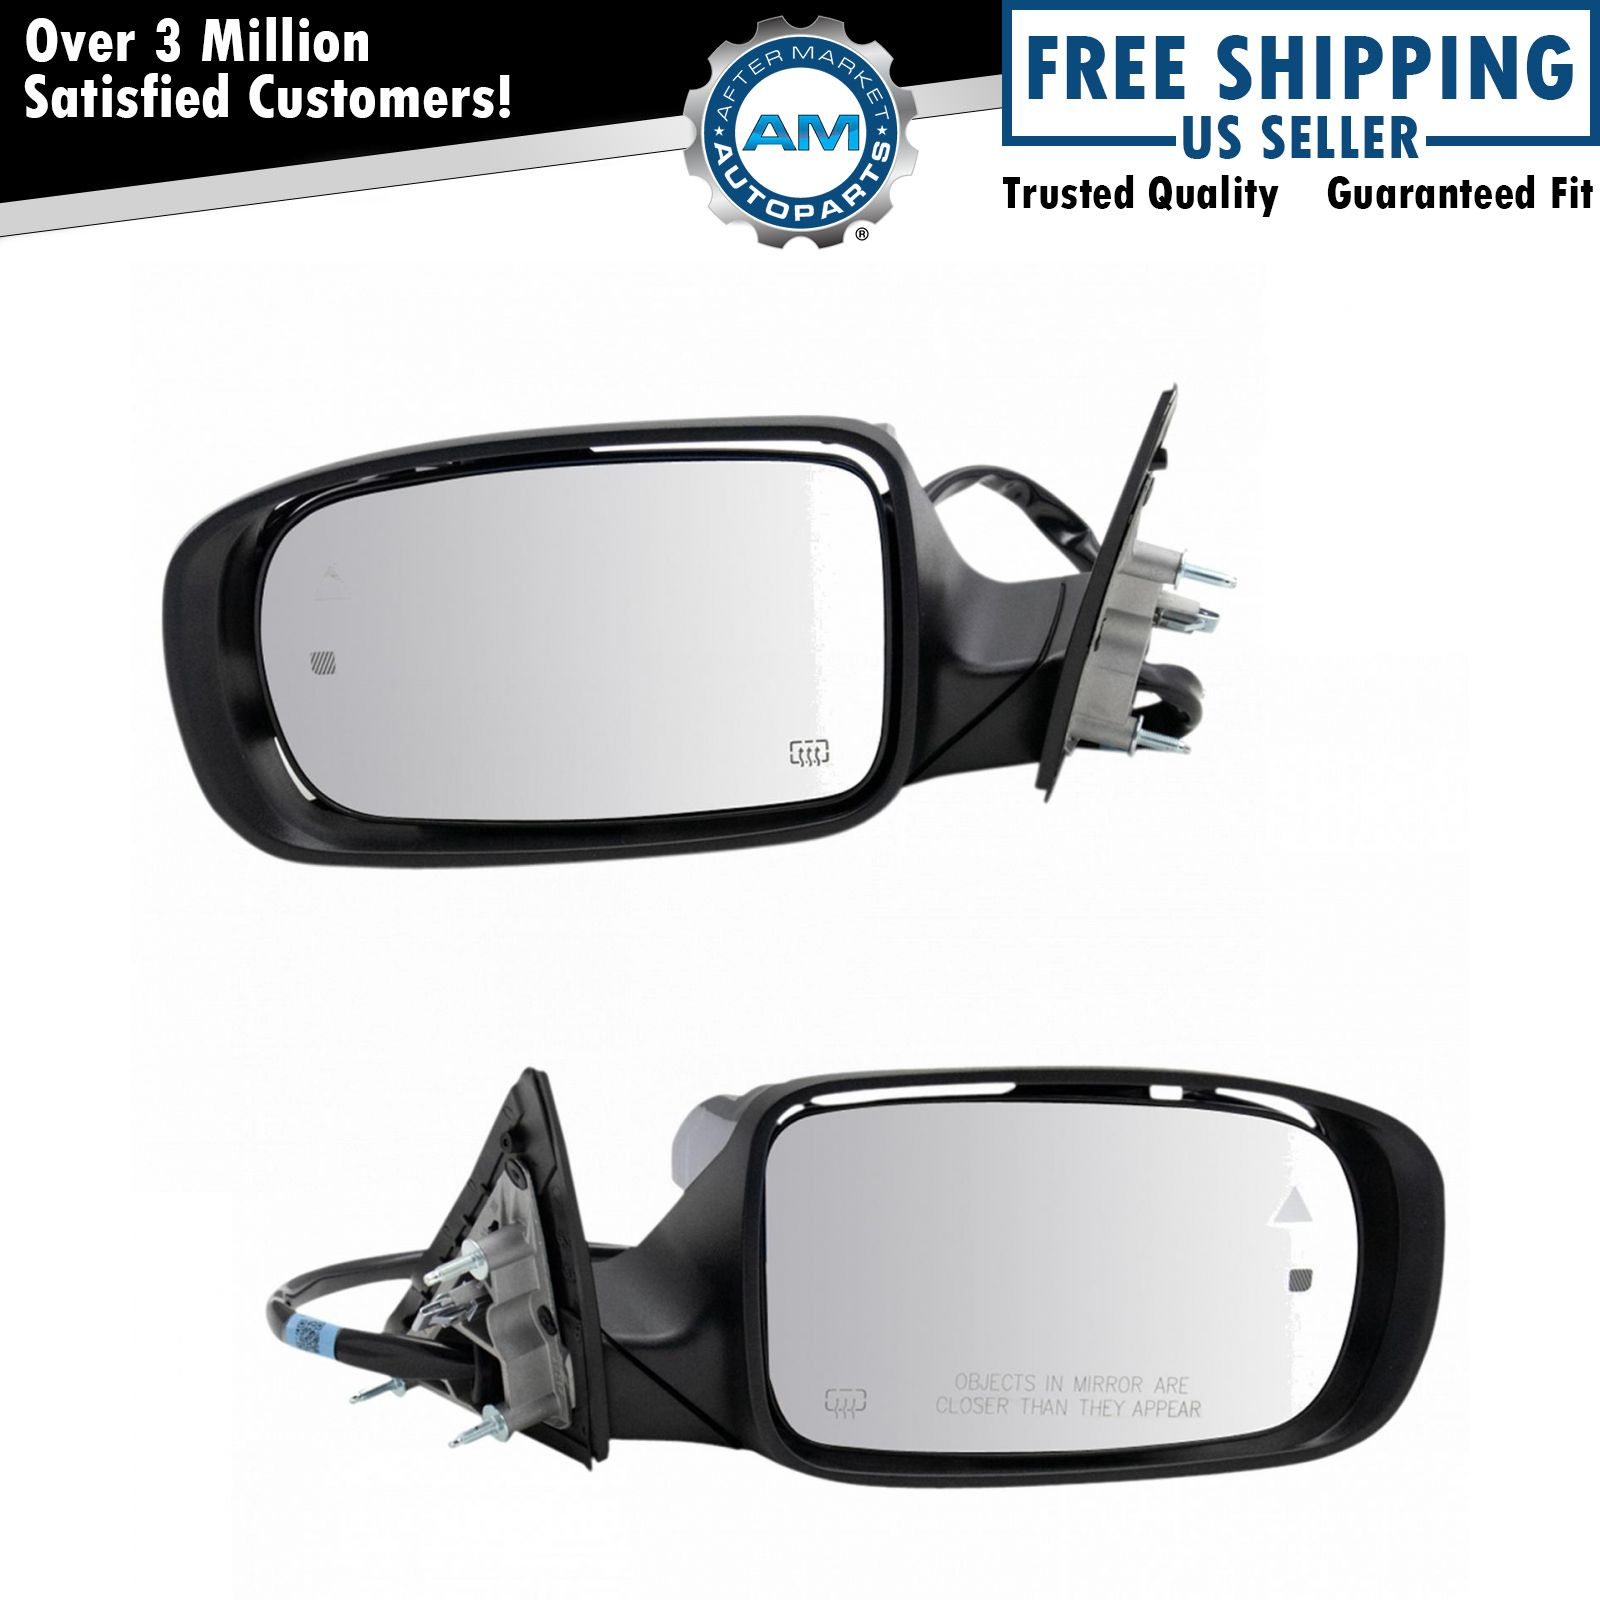 Set Mirrors for 11-19 Dodge Charger Power Heated Memory Blind Spot Detection